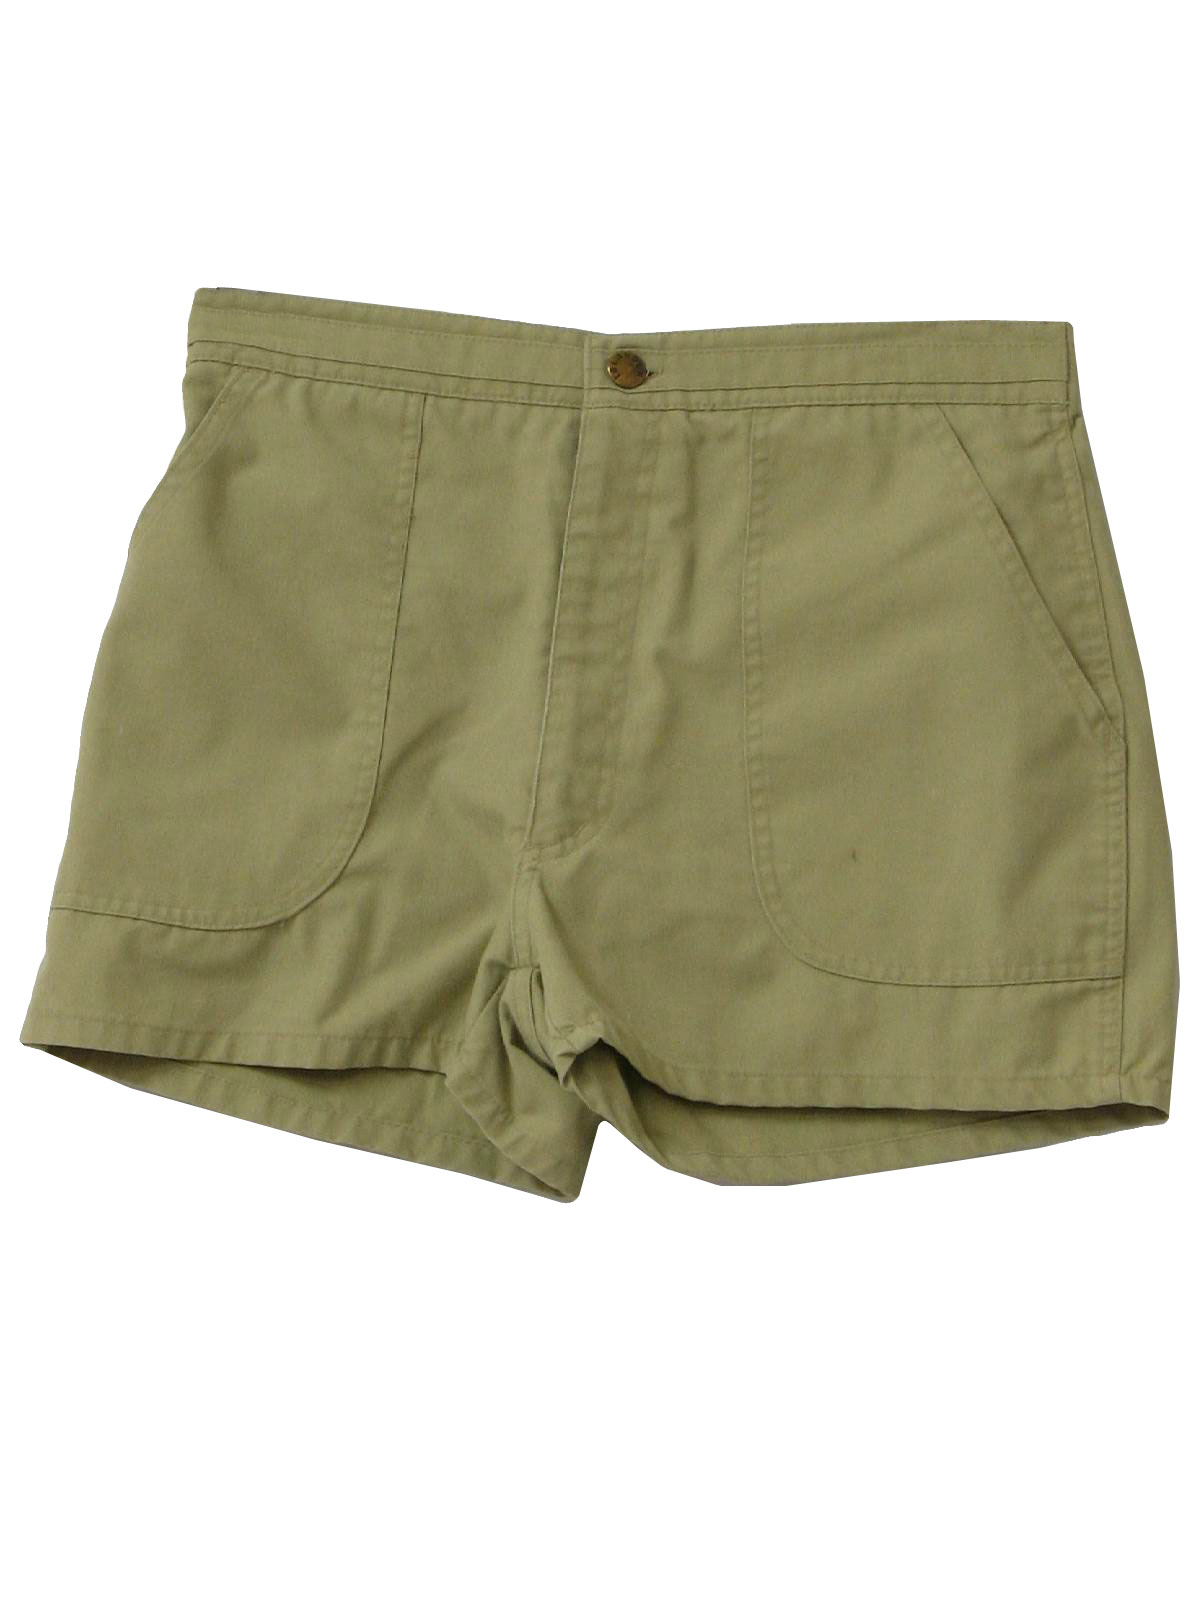 Retro 1980's Shorts (Islander) : 80s -Islander- Mens clay green ...